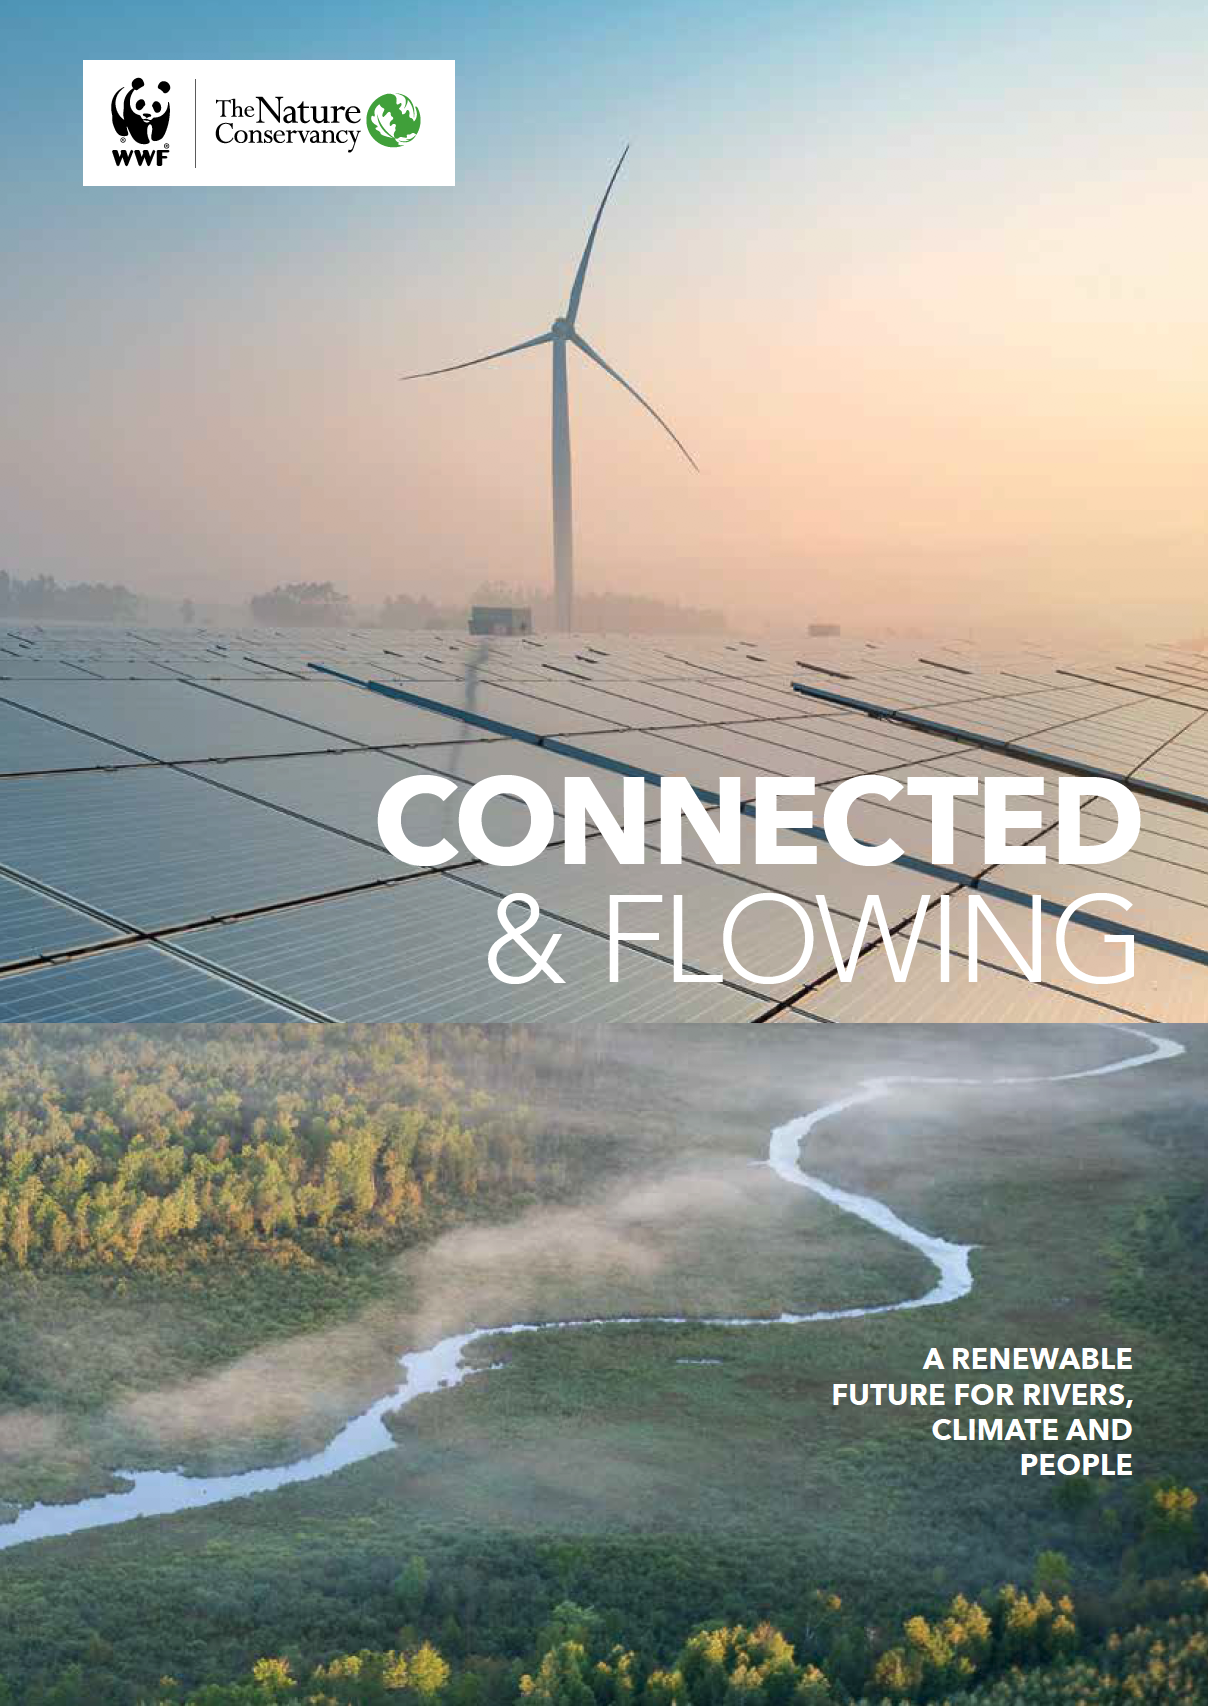 Thumbnail of Connected & Flowing report cover.